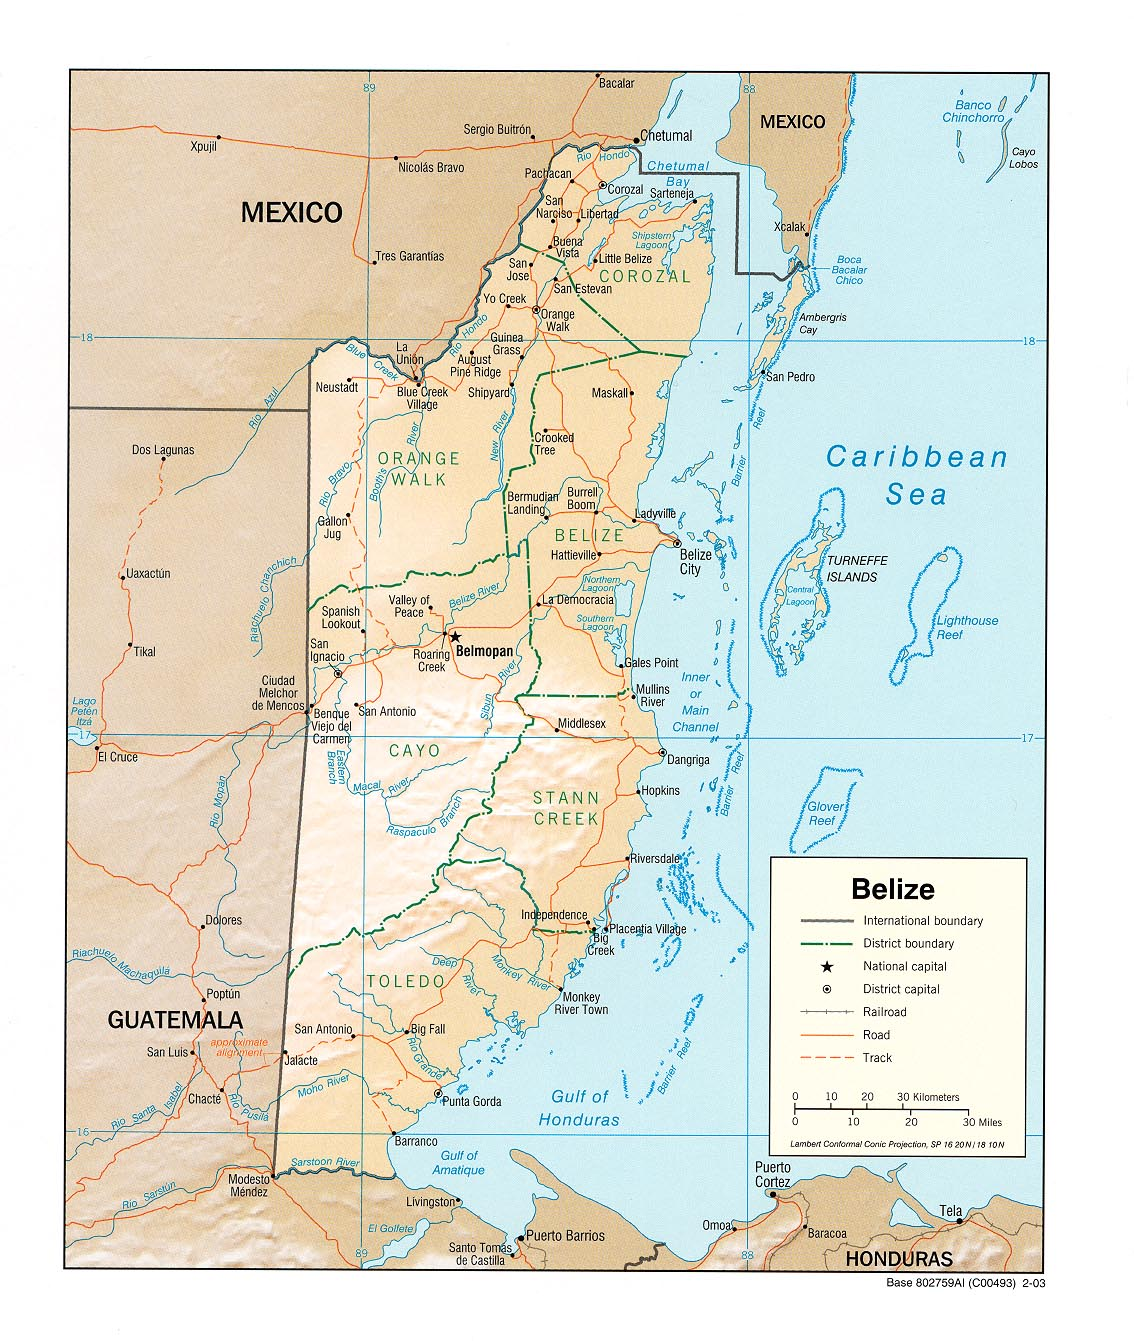 Belize_Shaded_Relief_Map.jpg